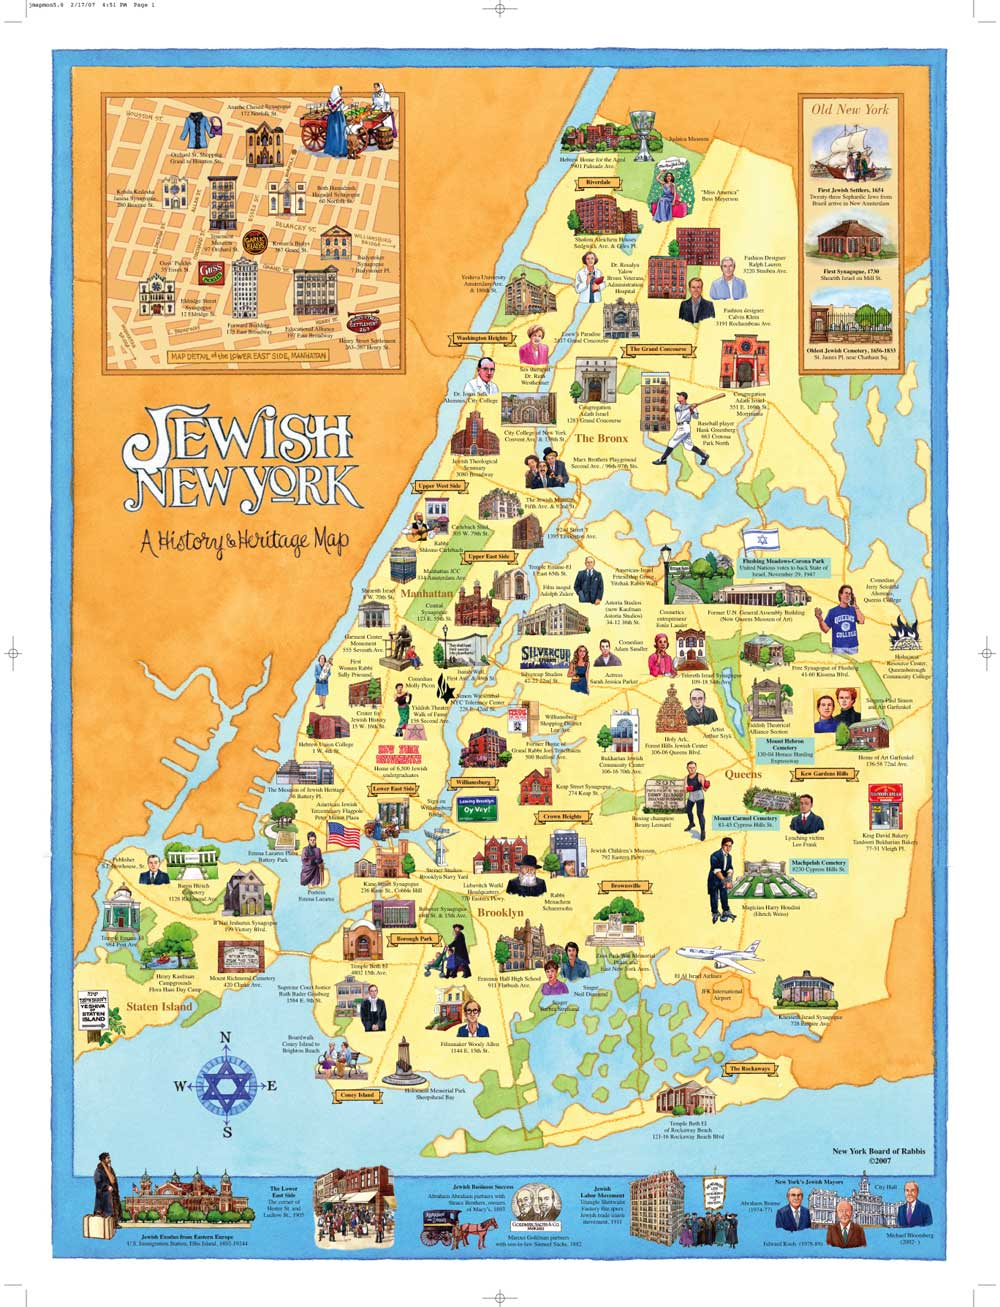 jewish new york a history heritage map from httpwwwnewyorkologycomarchives200711finding_sarah_j_1php